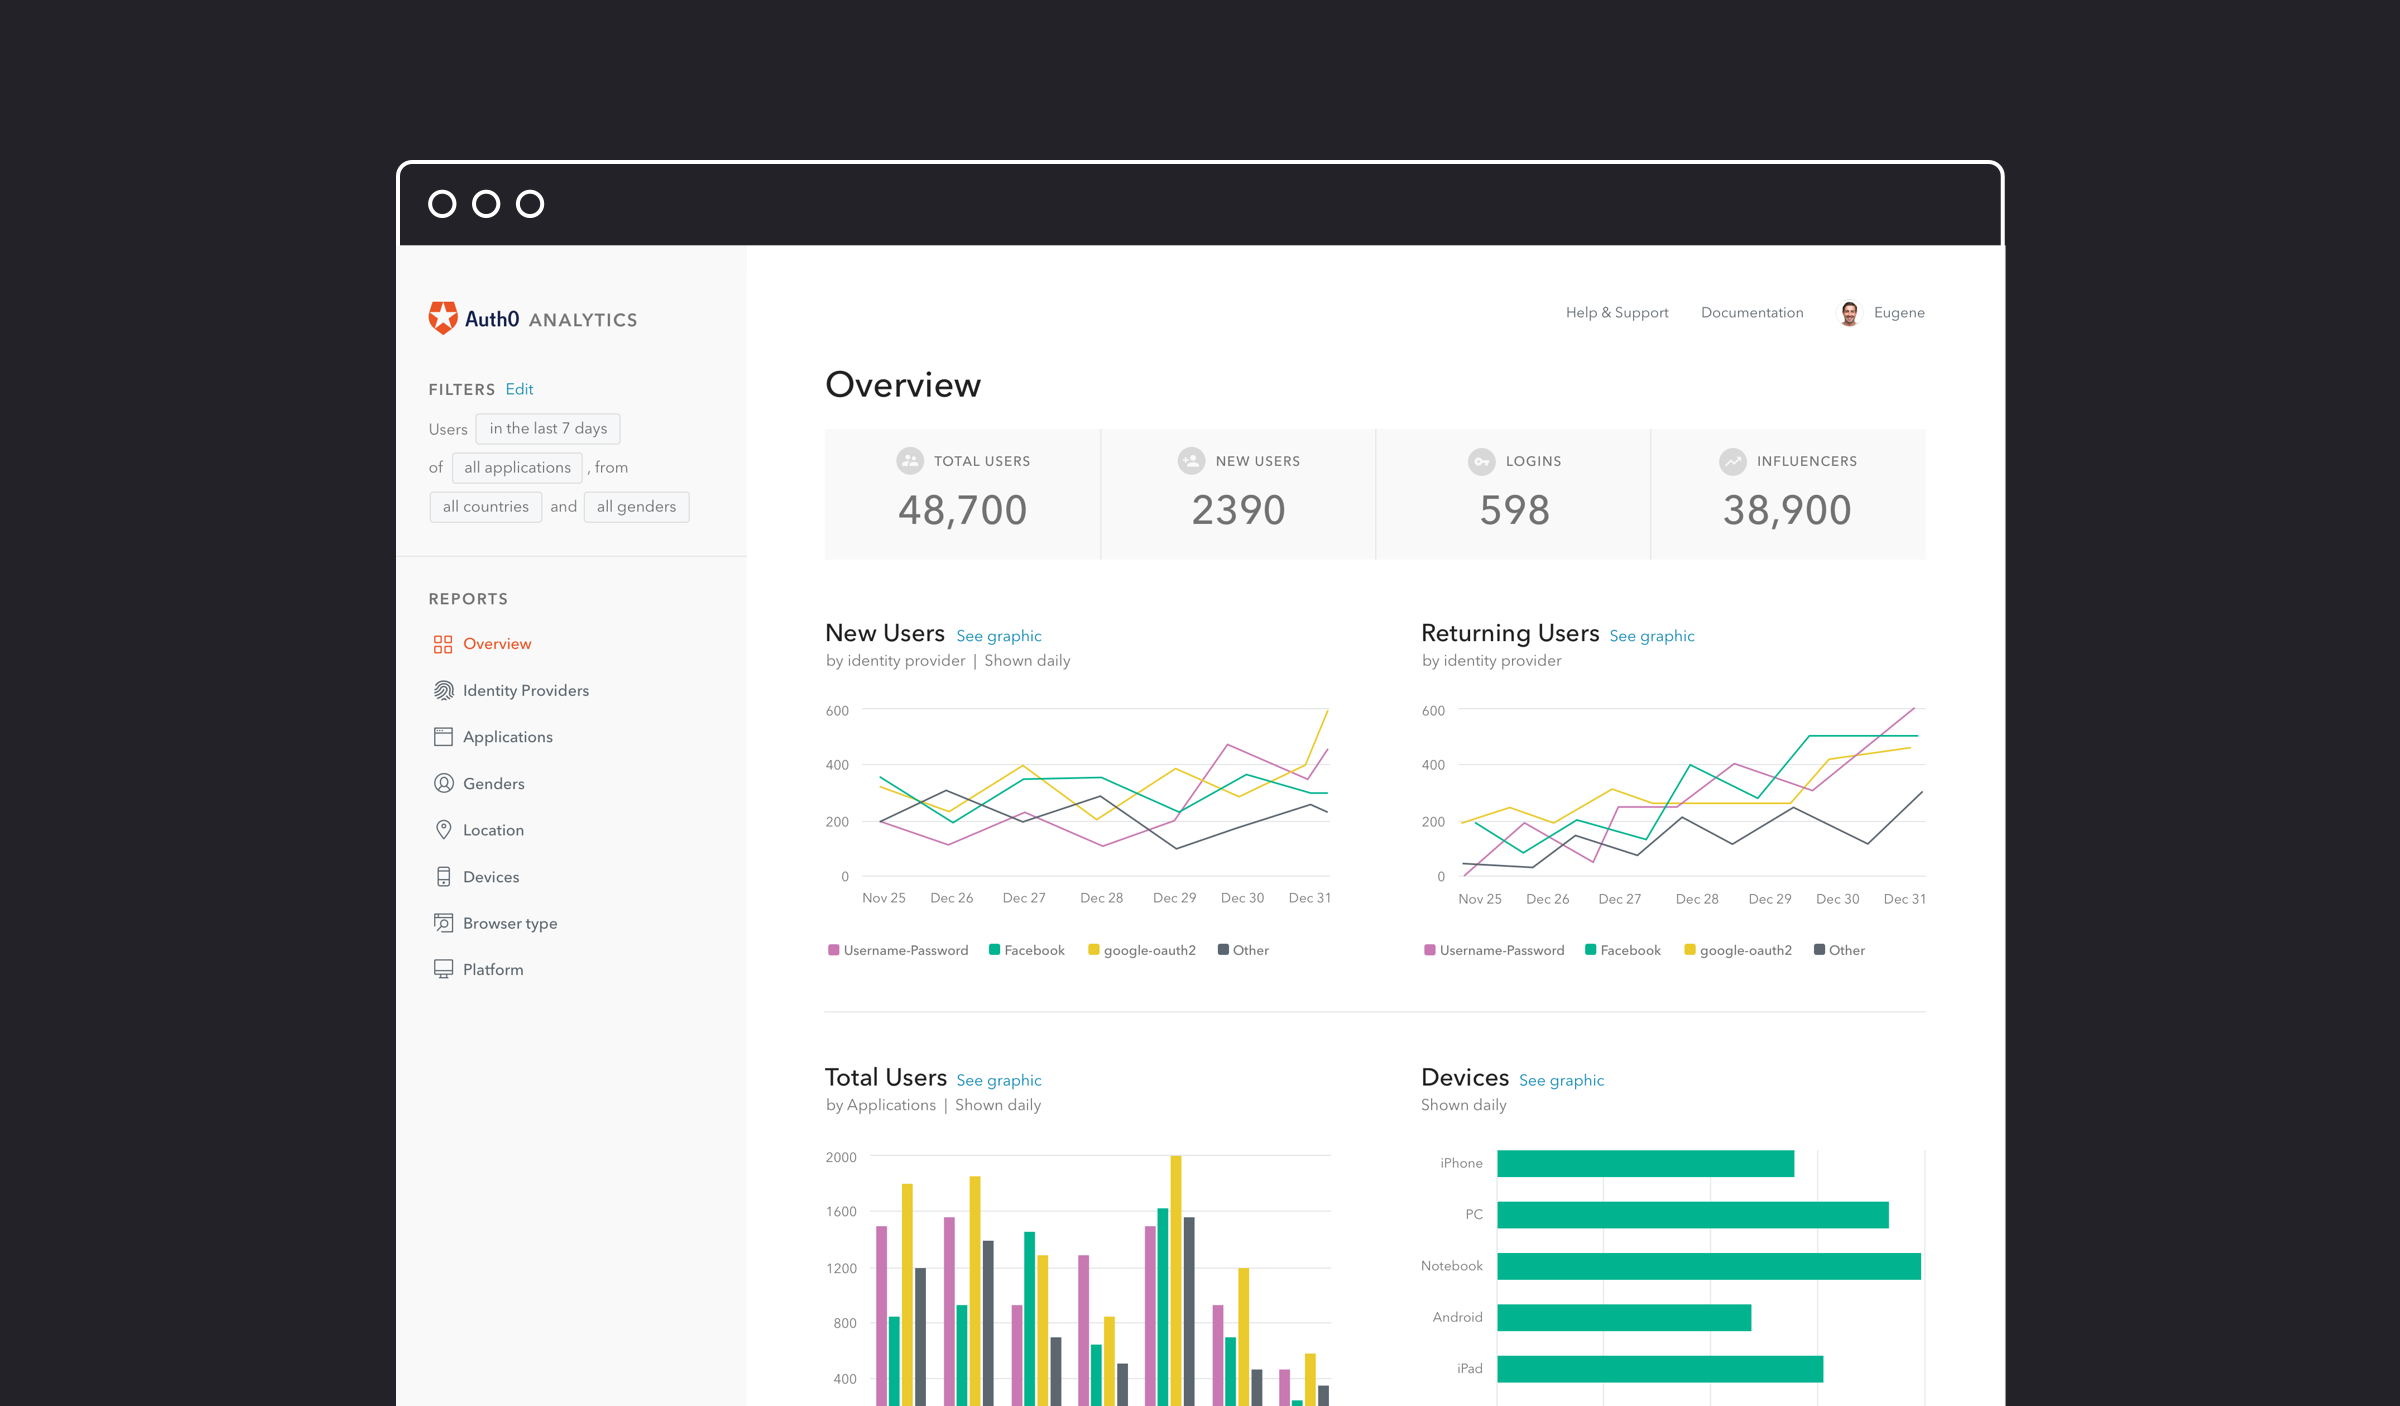 Customer data visualization in Auth0 reports allows for better reporting and analytics